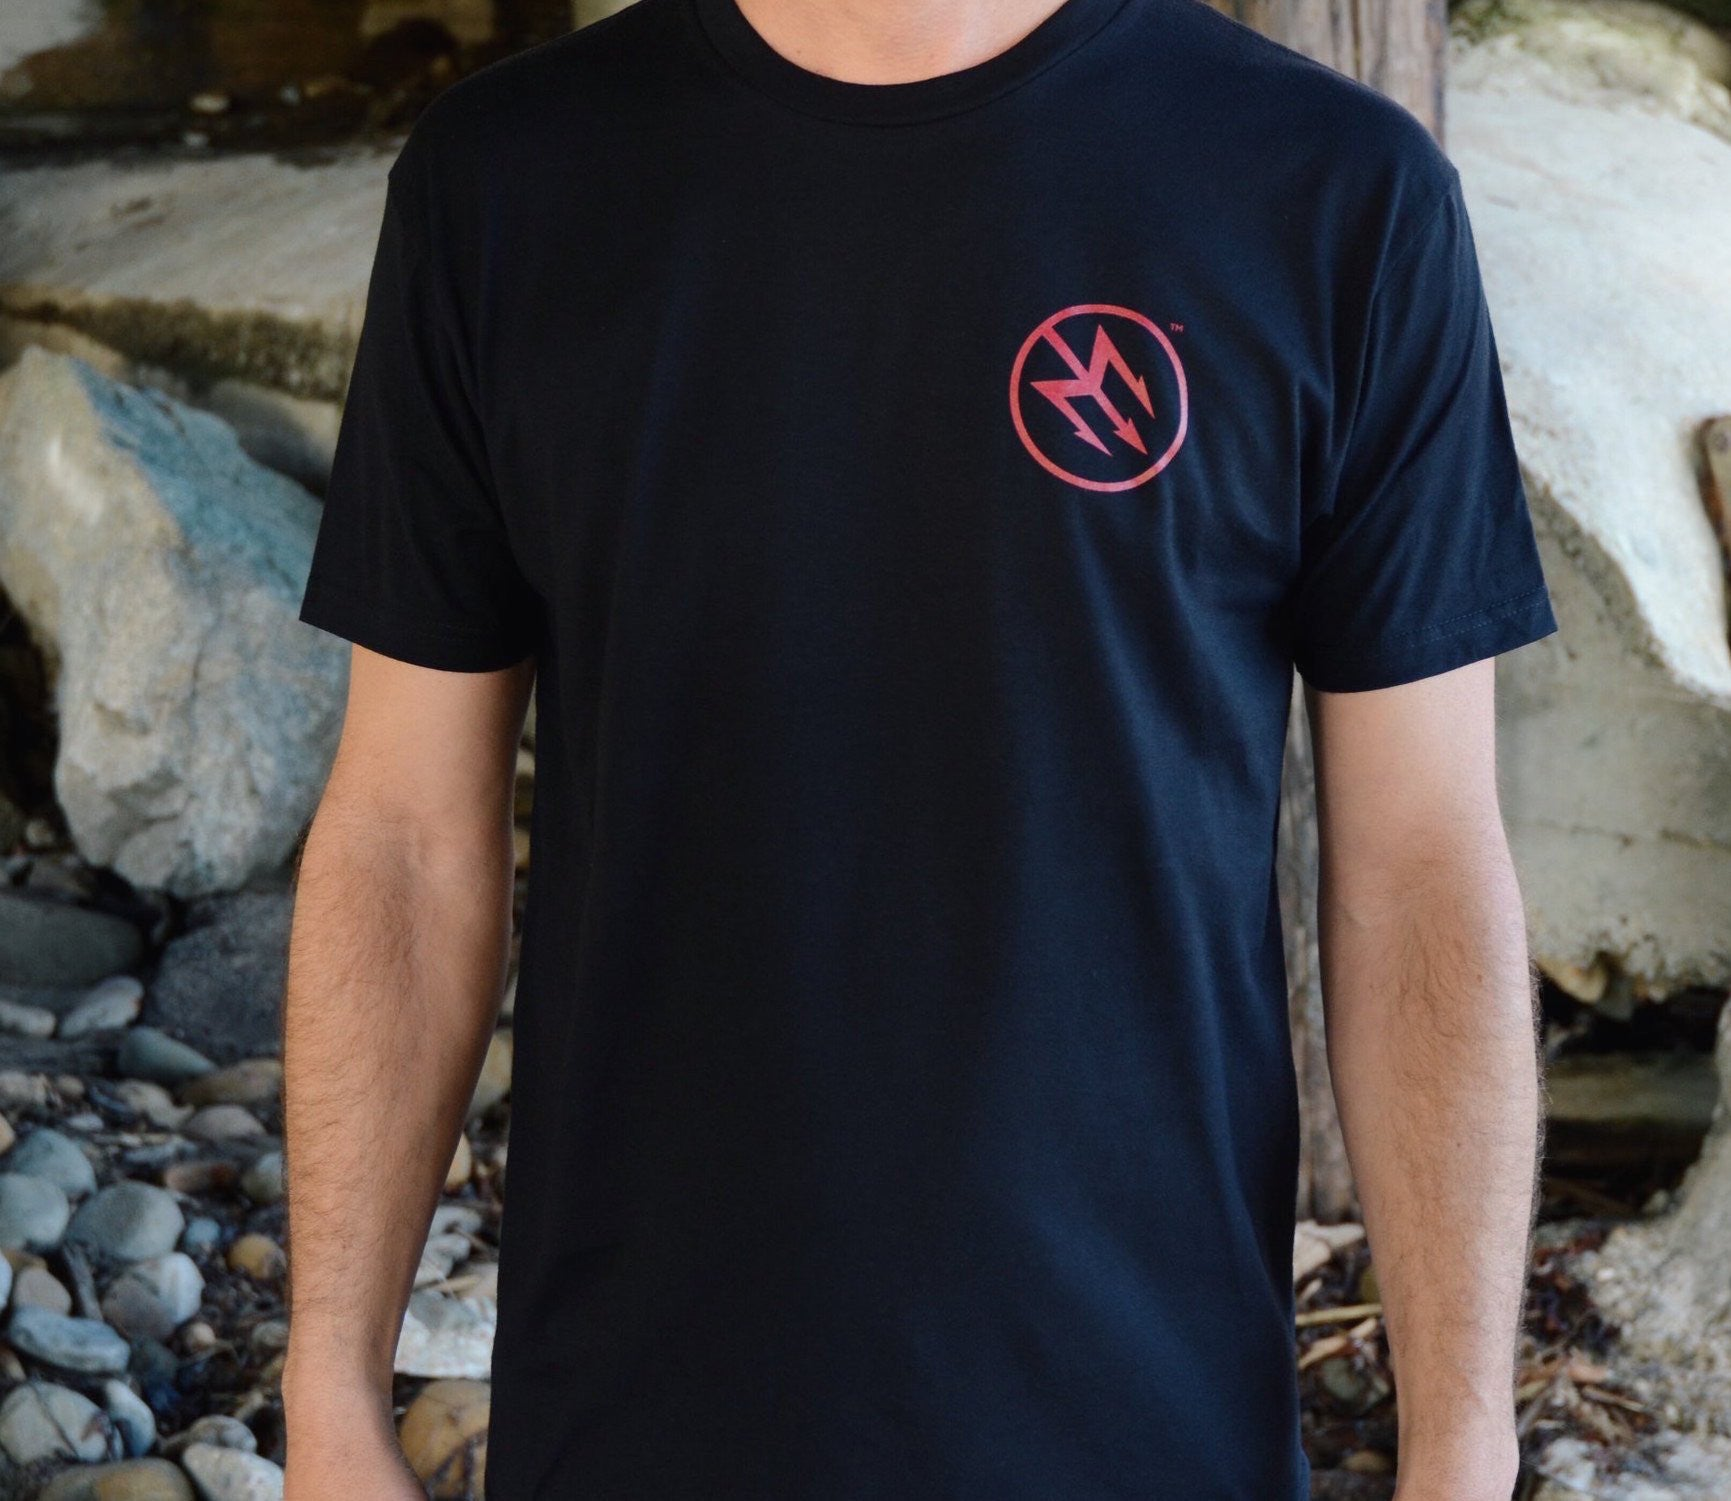 Mavericks Crest T-shirt